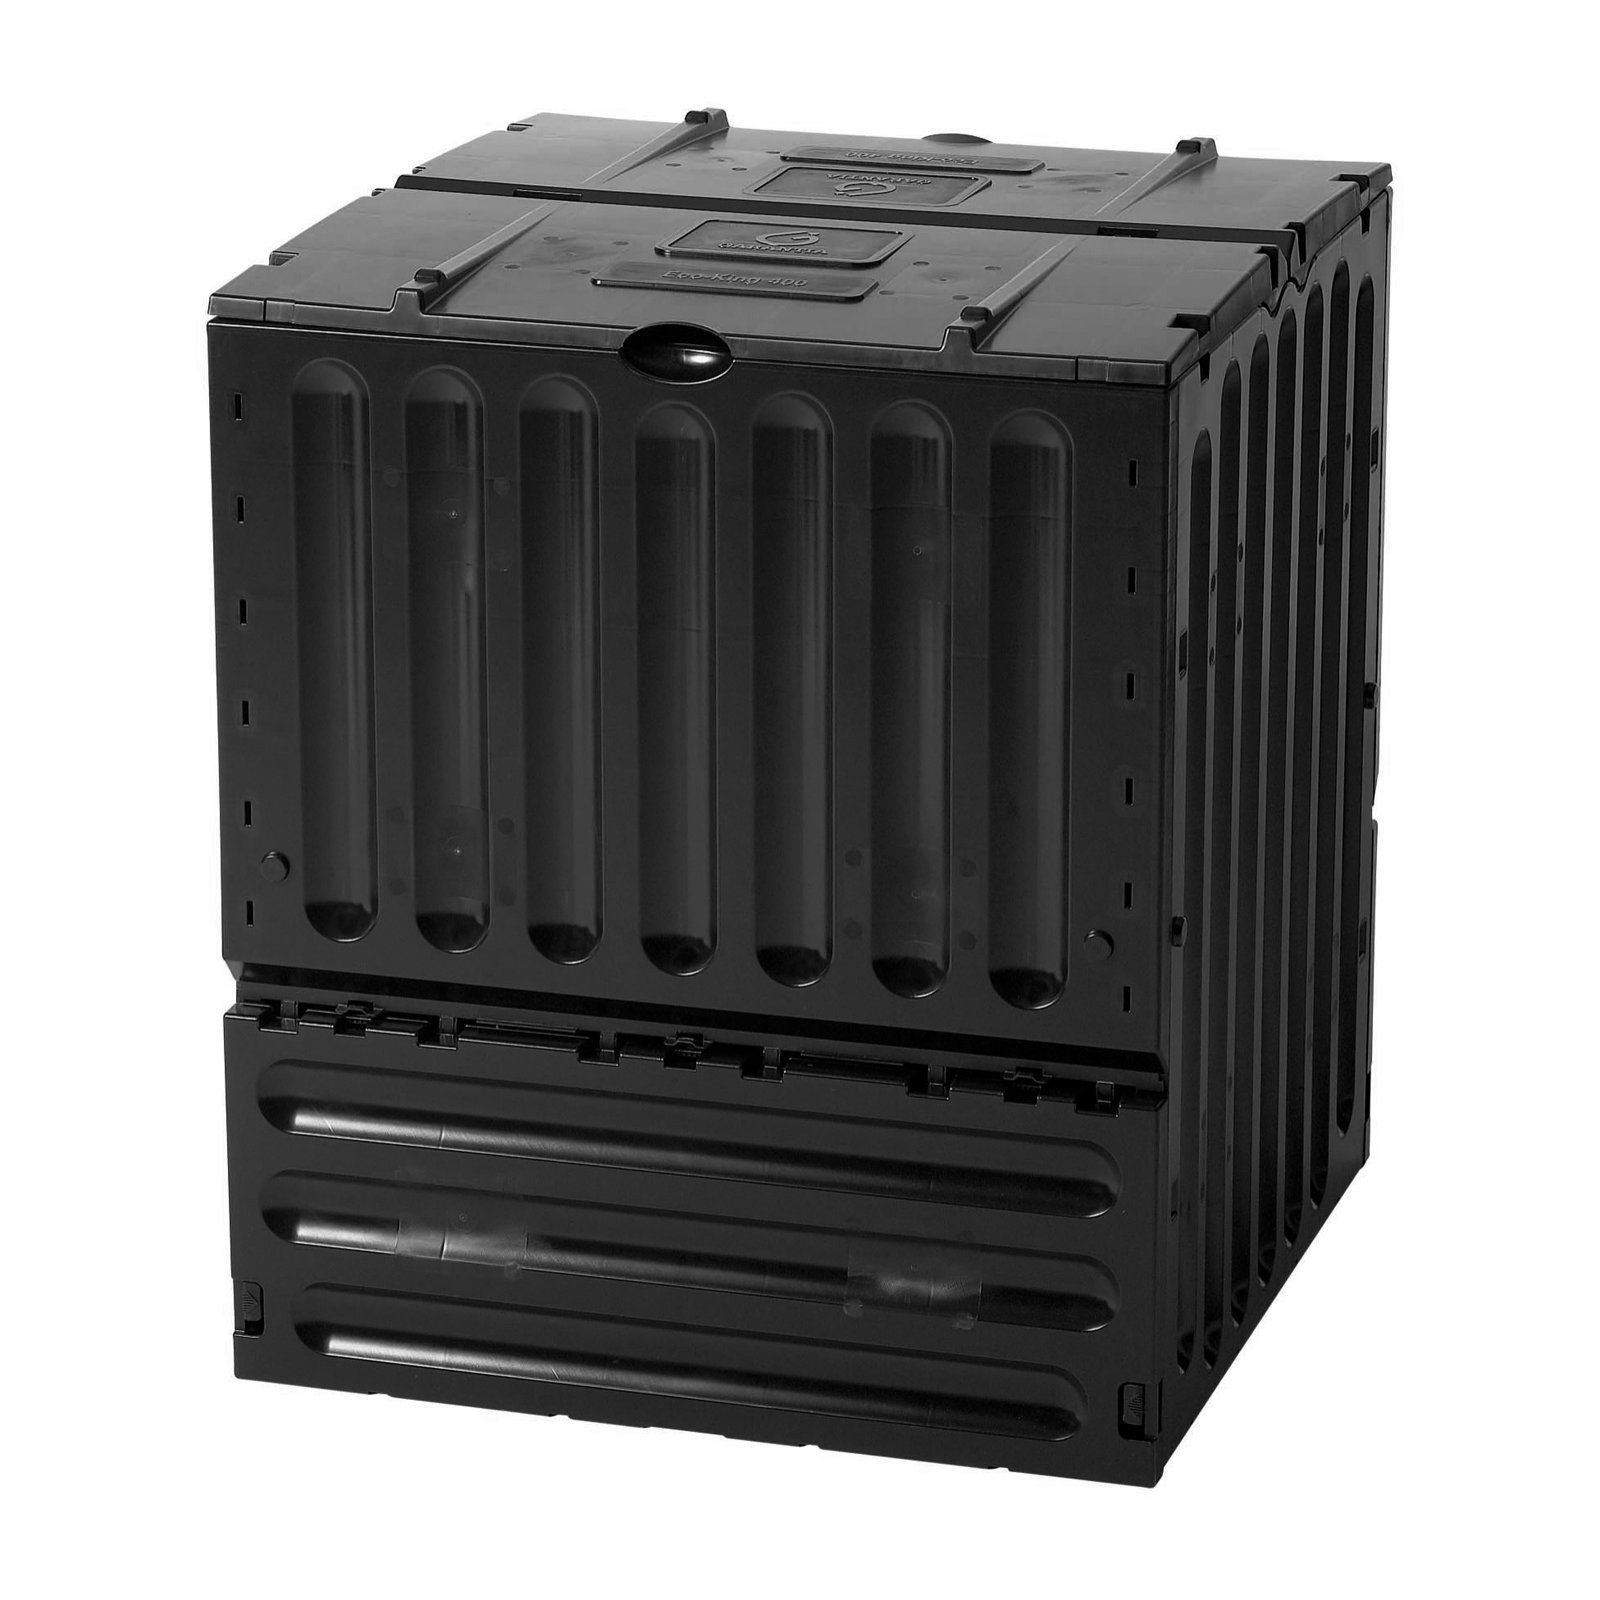 Eco King 105 Gallon Recycled Plastic Compost Bin Black by TDI Brands